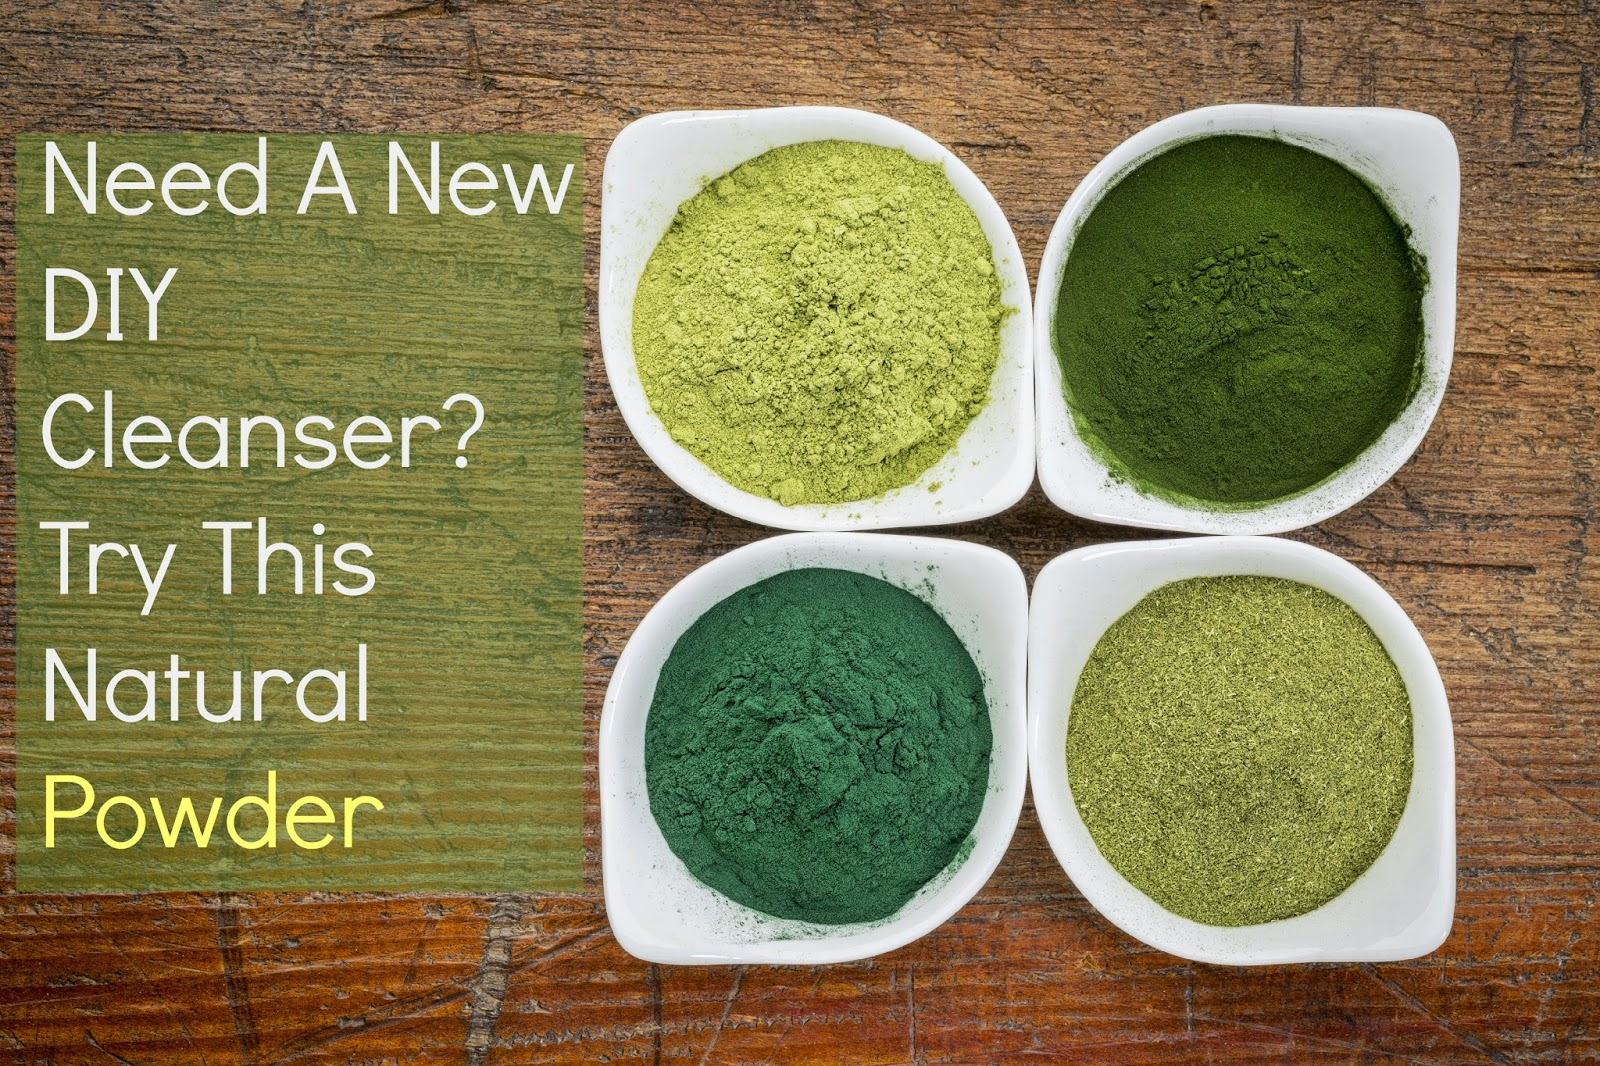 Need A New DIY Cleanser? Try This Natural Powder